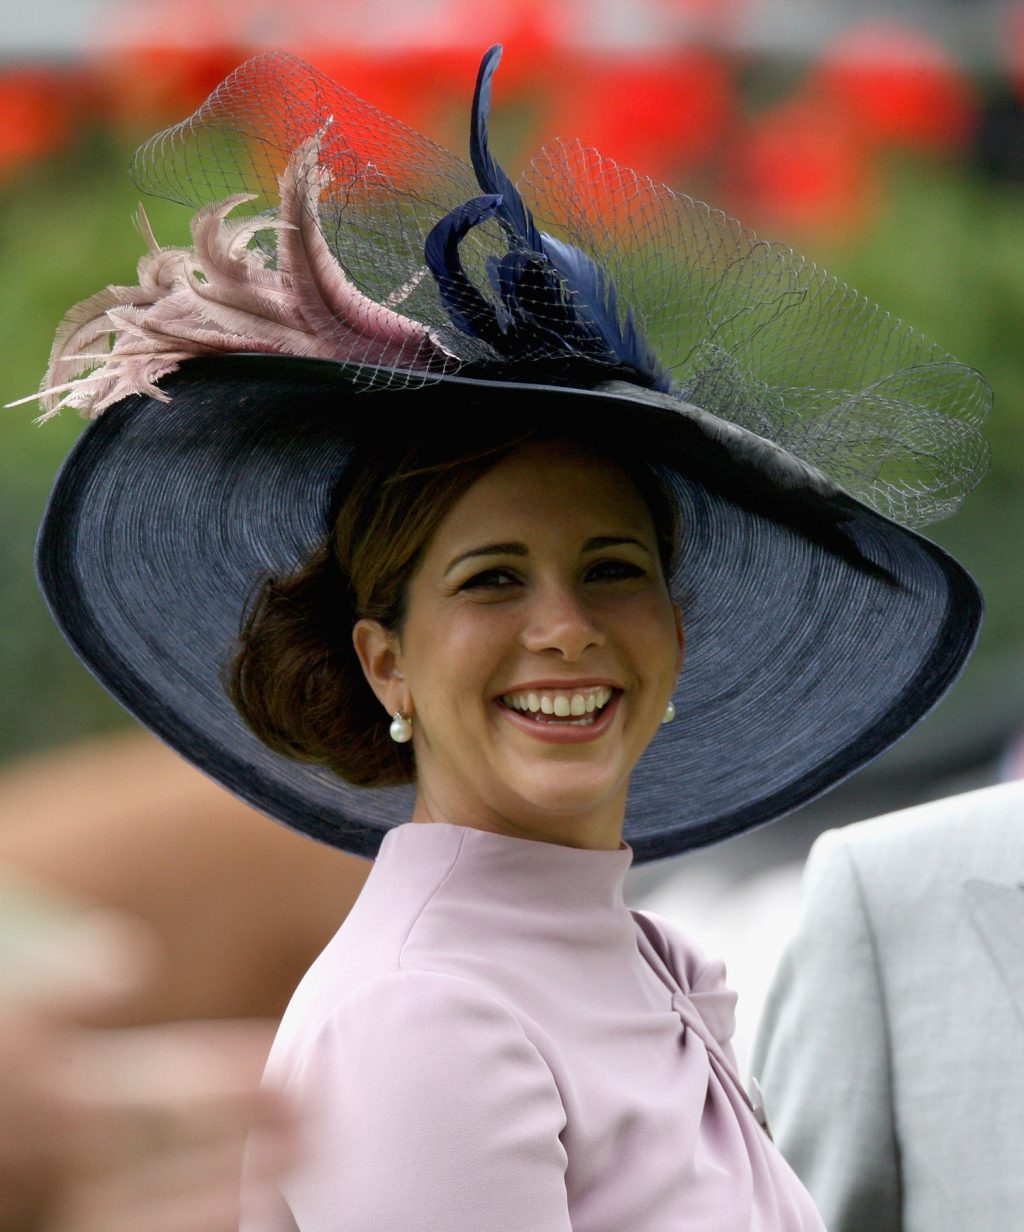 #WCW: Honoring HRH Princess Haya Bint Al Hussein's Philanthropy and Style